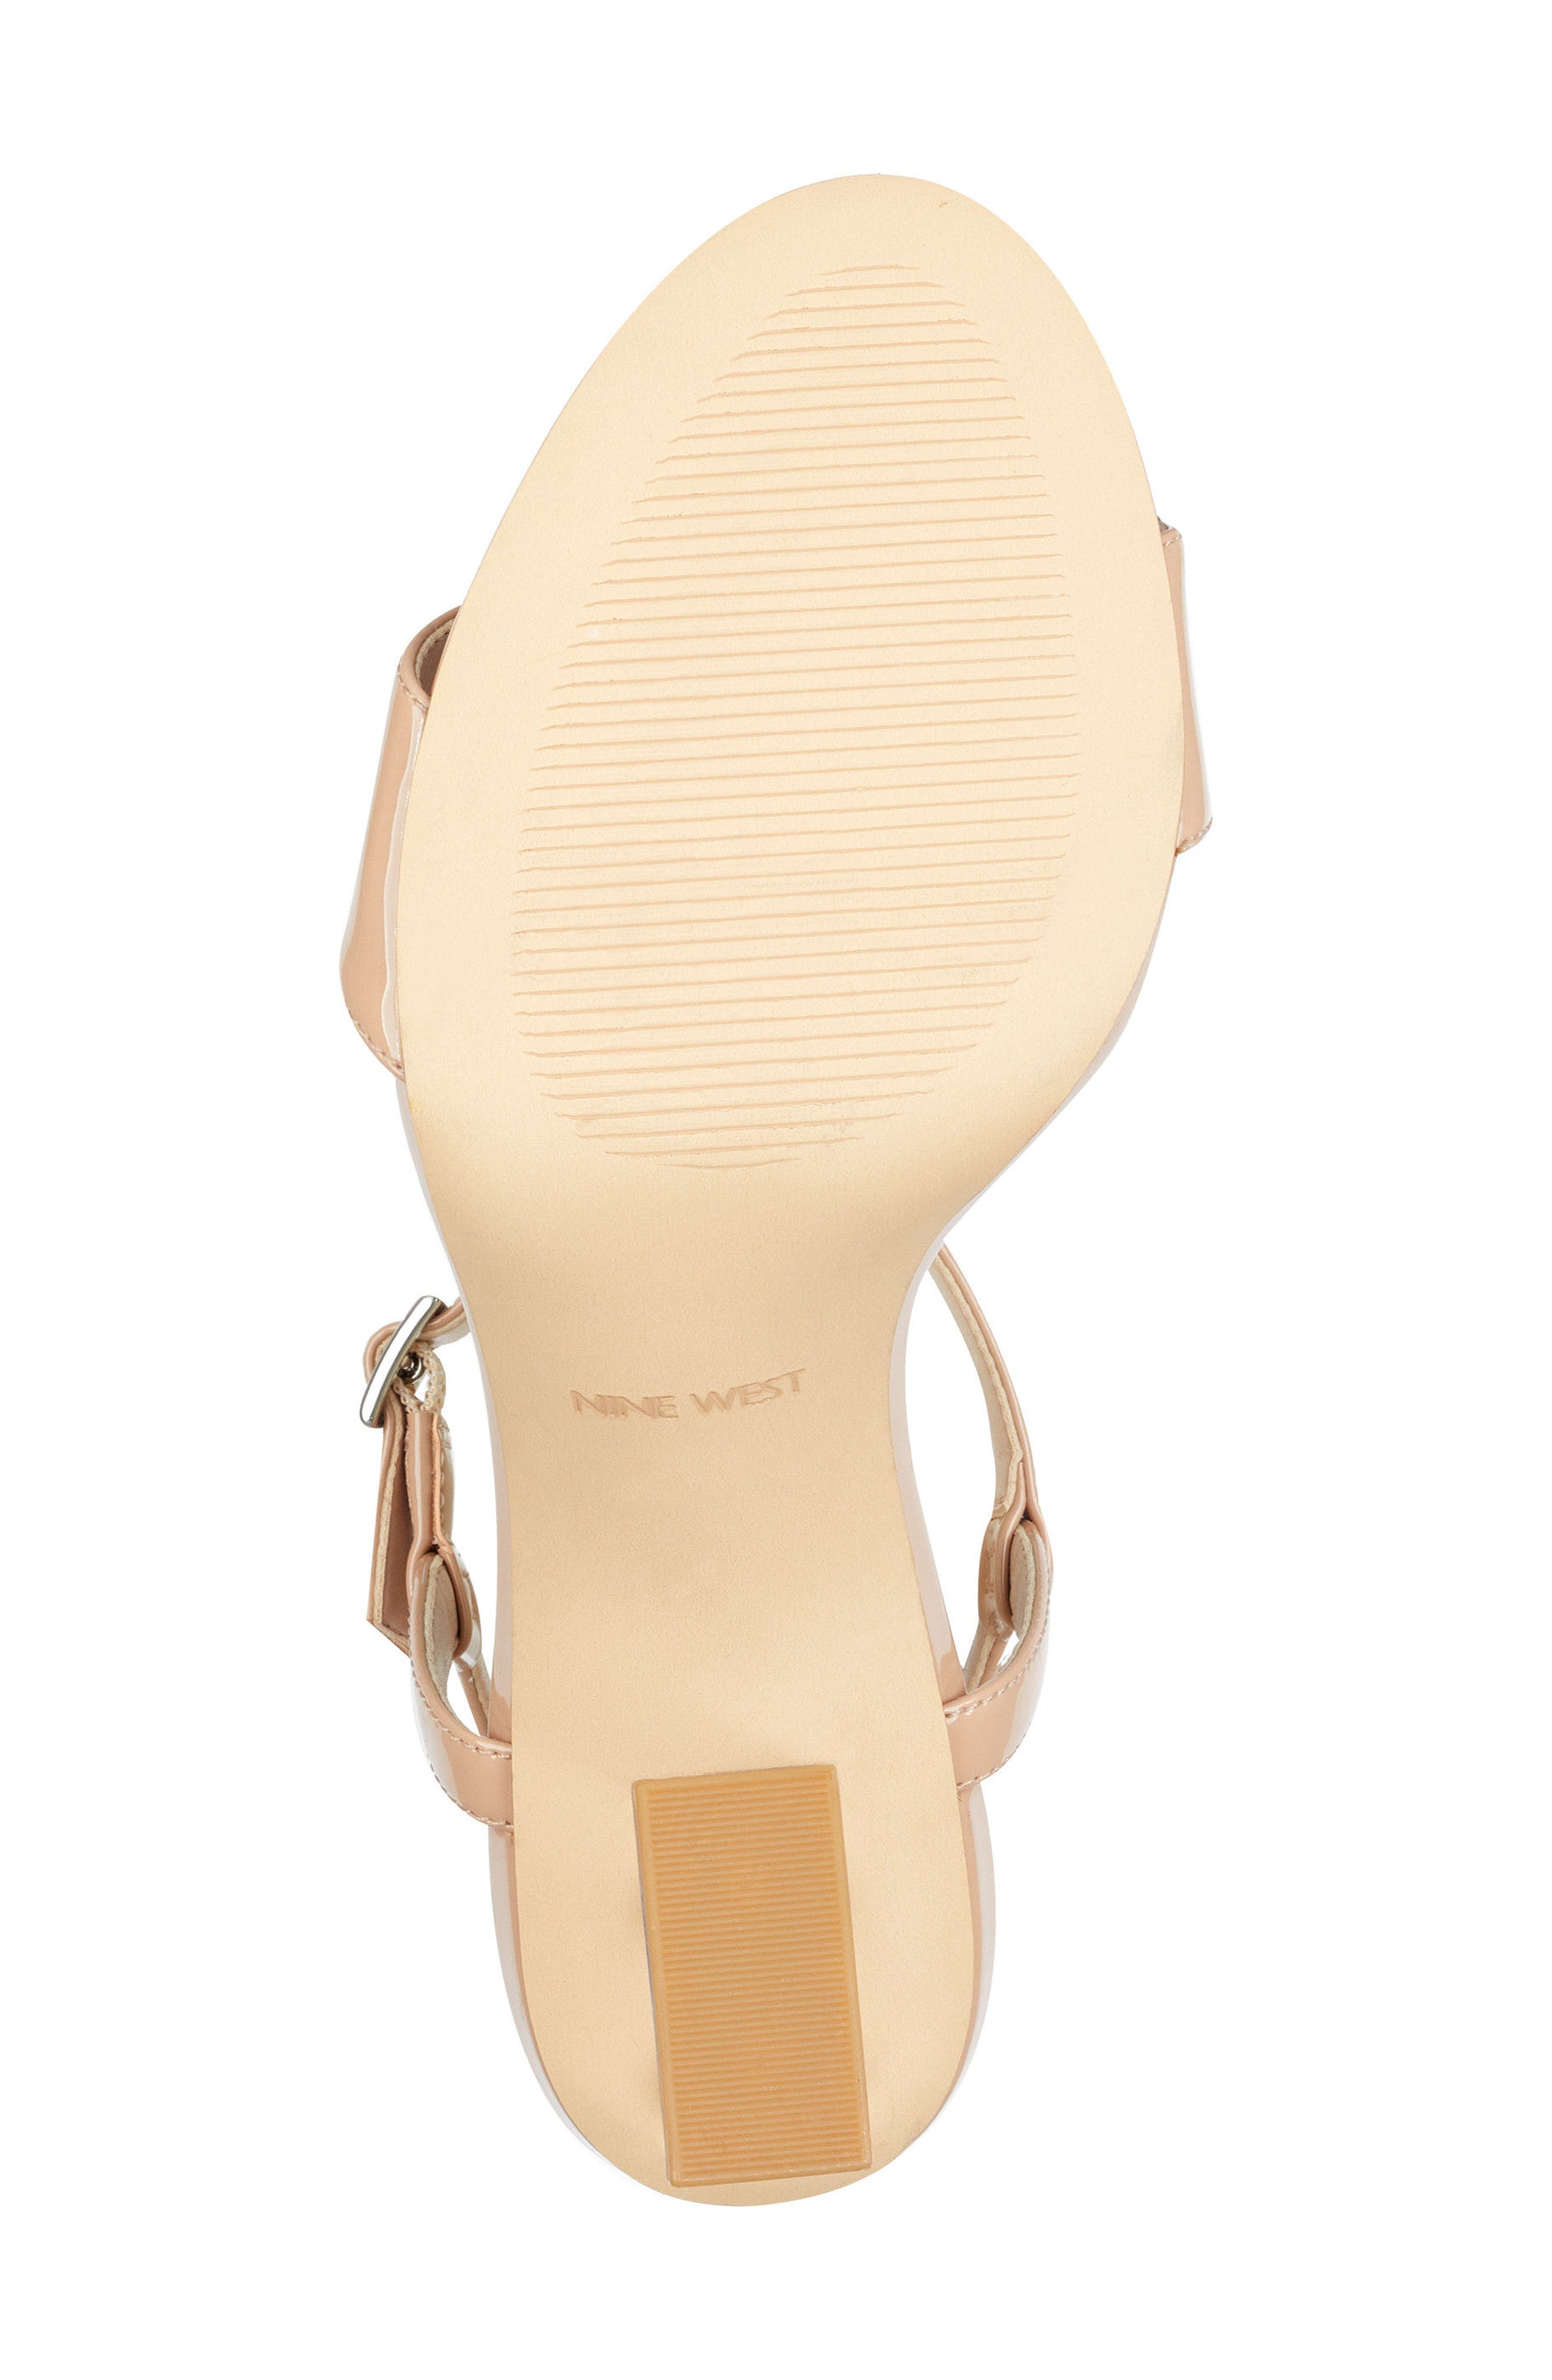 Feisty Ankle Strap Sandal,                             Alternate thumbnail 6, color,                             Nude Suede